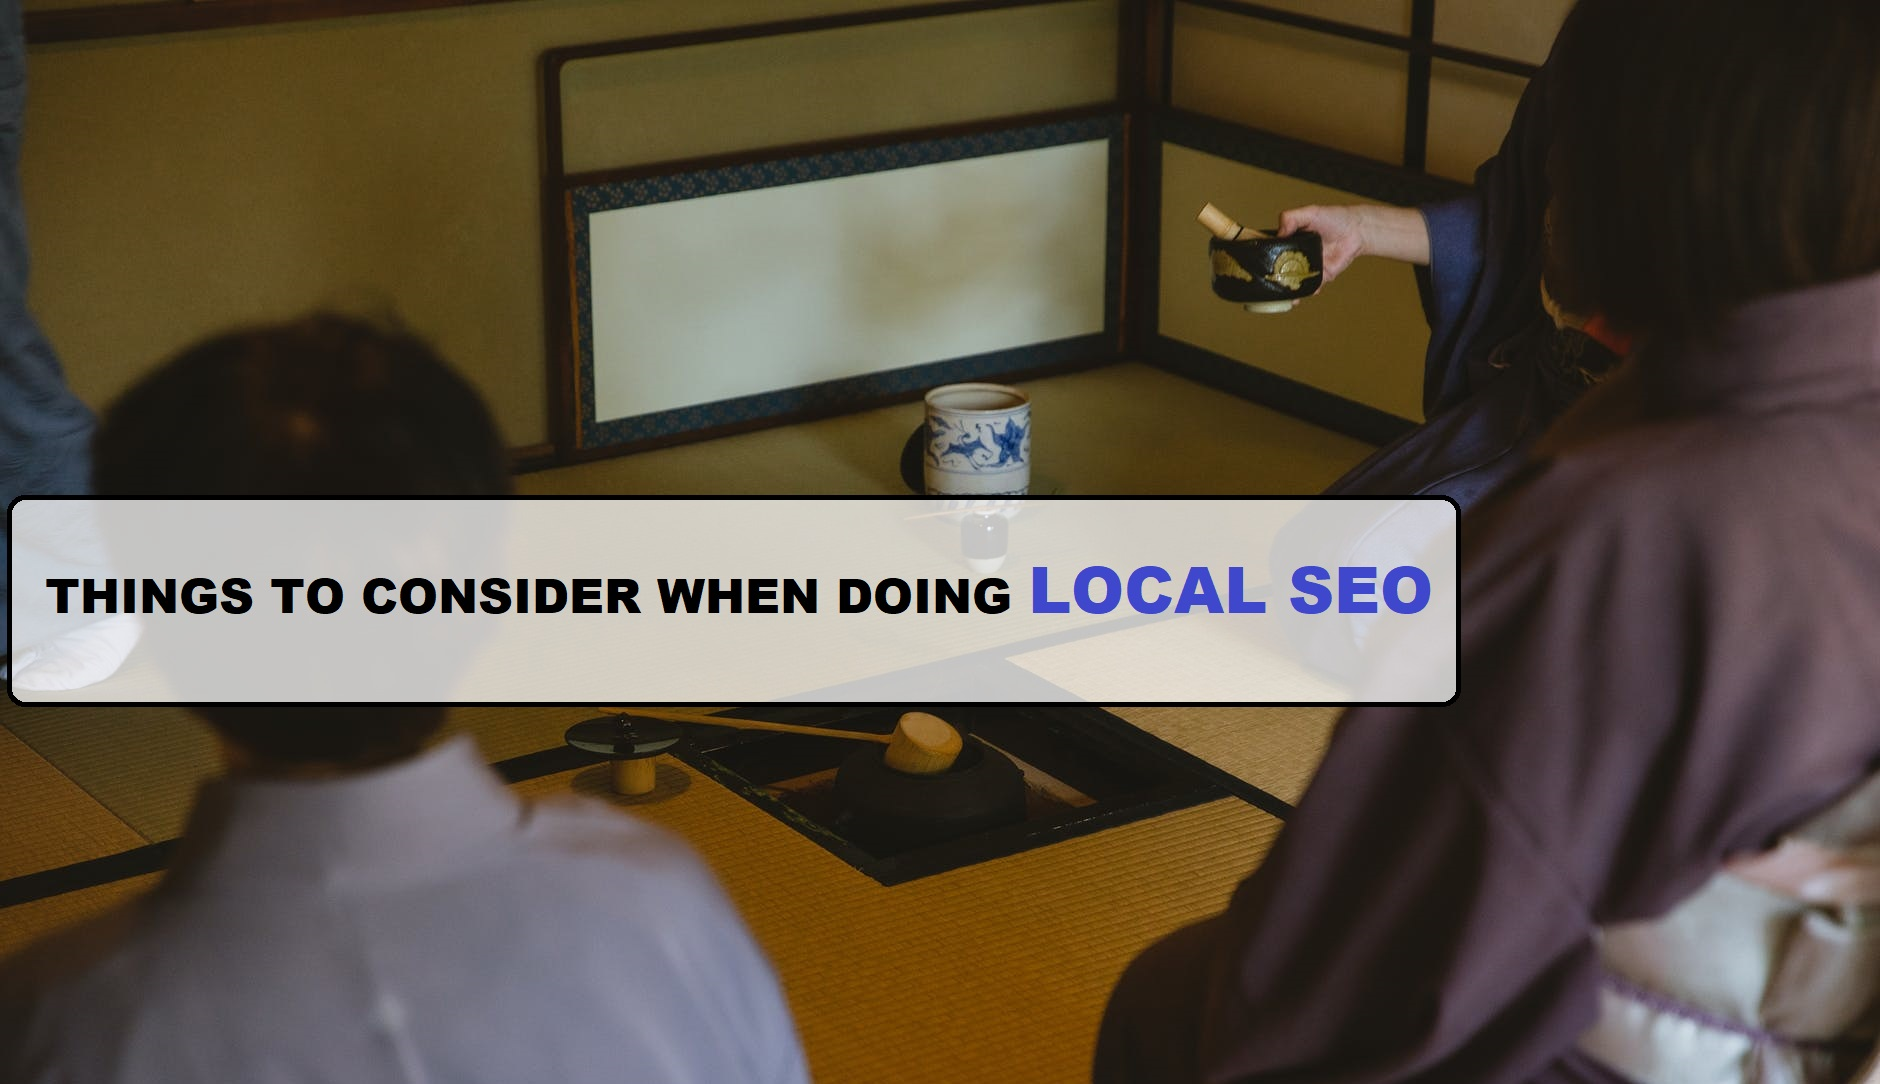 THINGS TO CONSIDER WHEN DOING LOCAL SEO